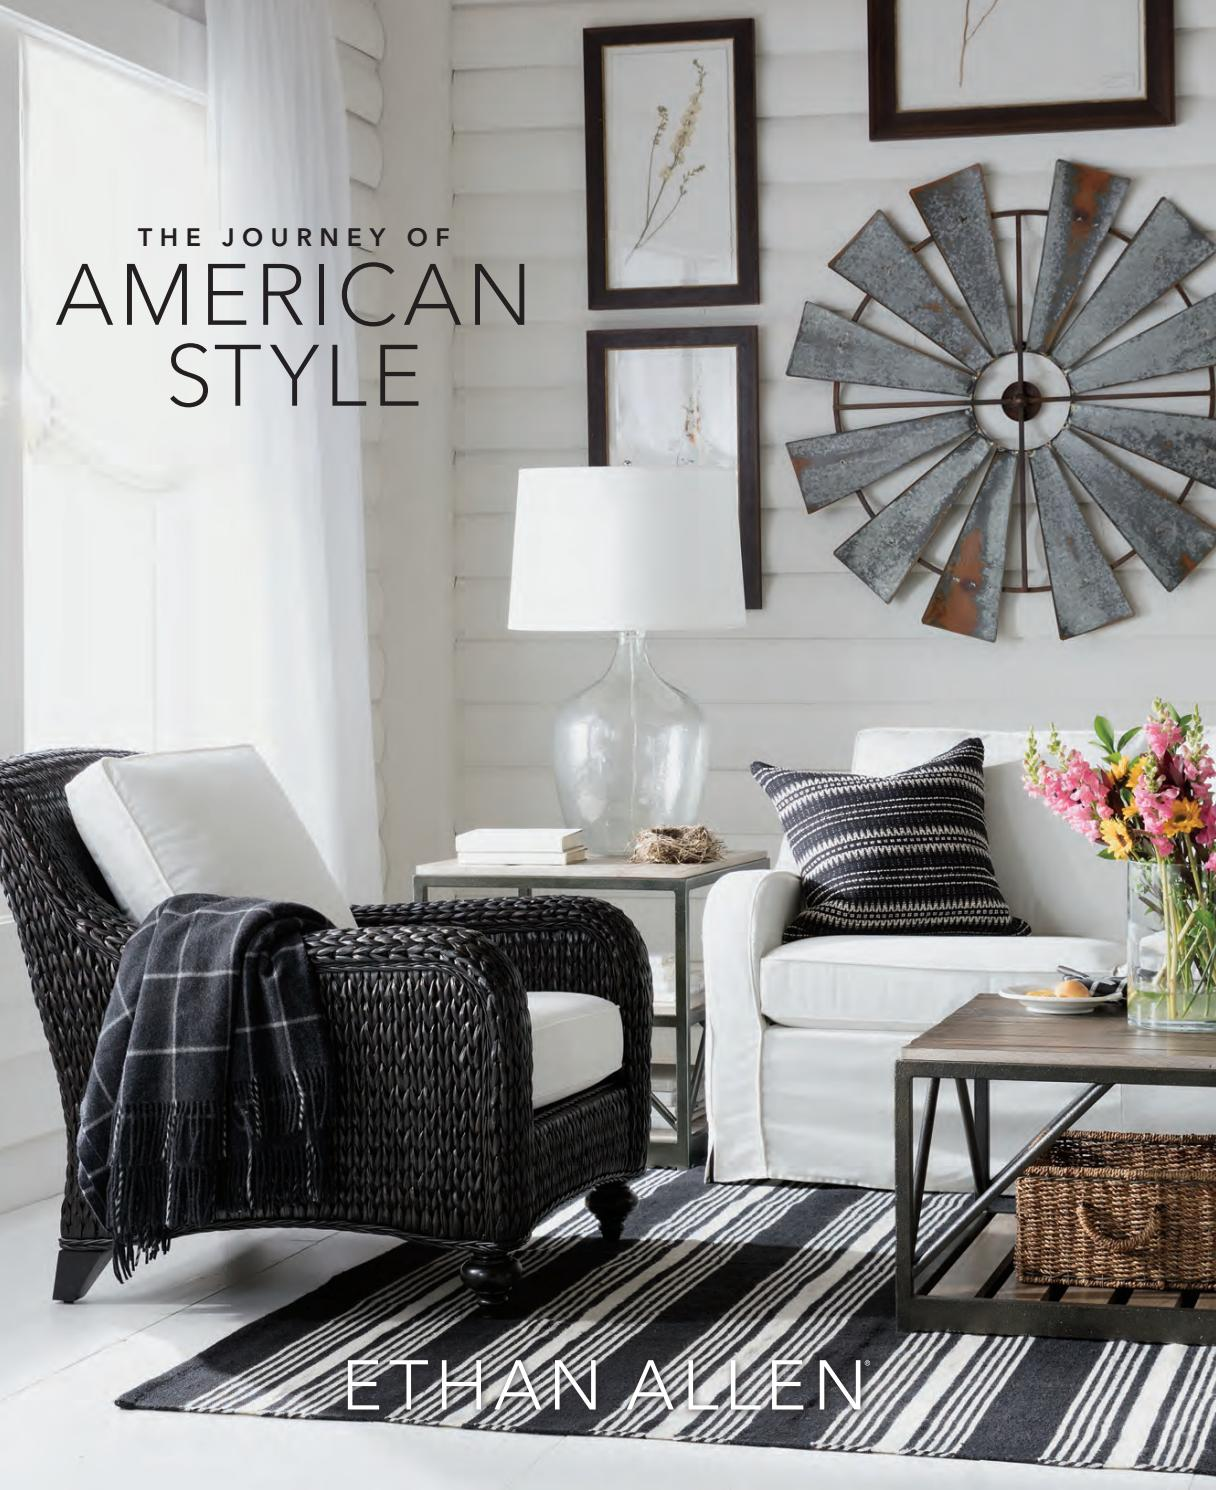 Ethan Allen 2018 Catalog By Home Design 2018 Issuu